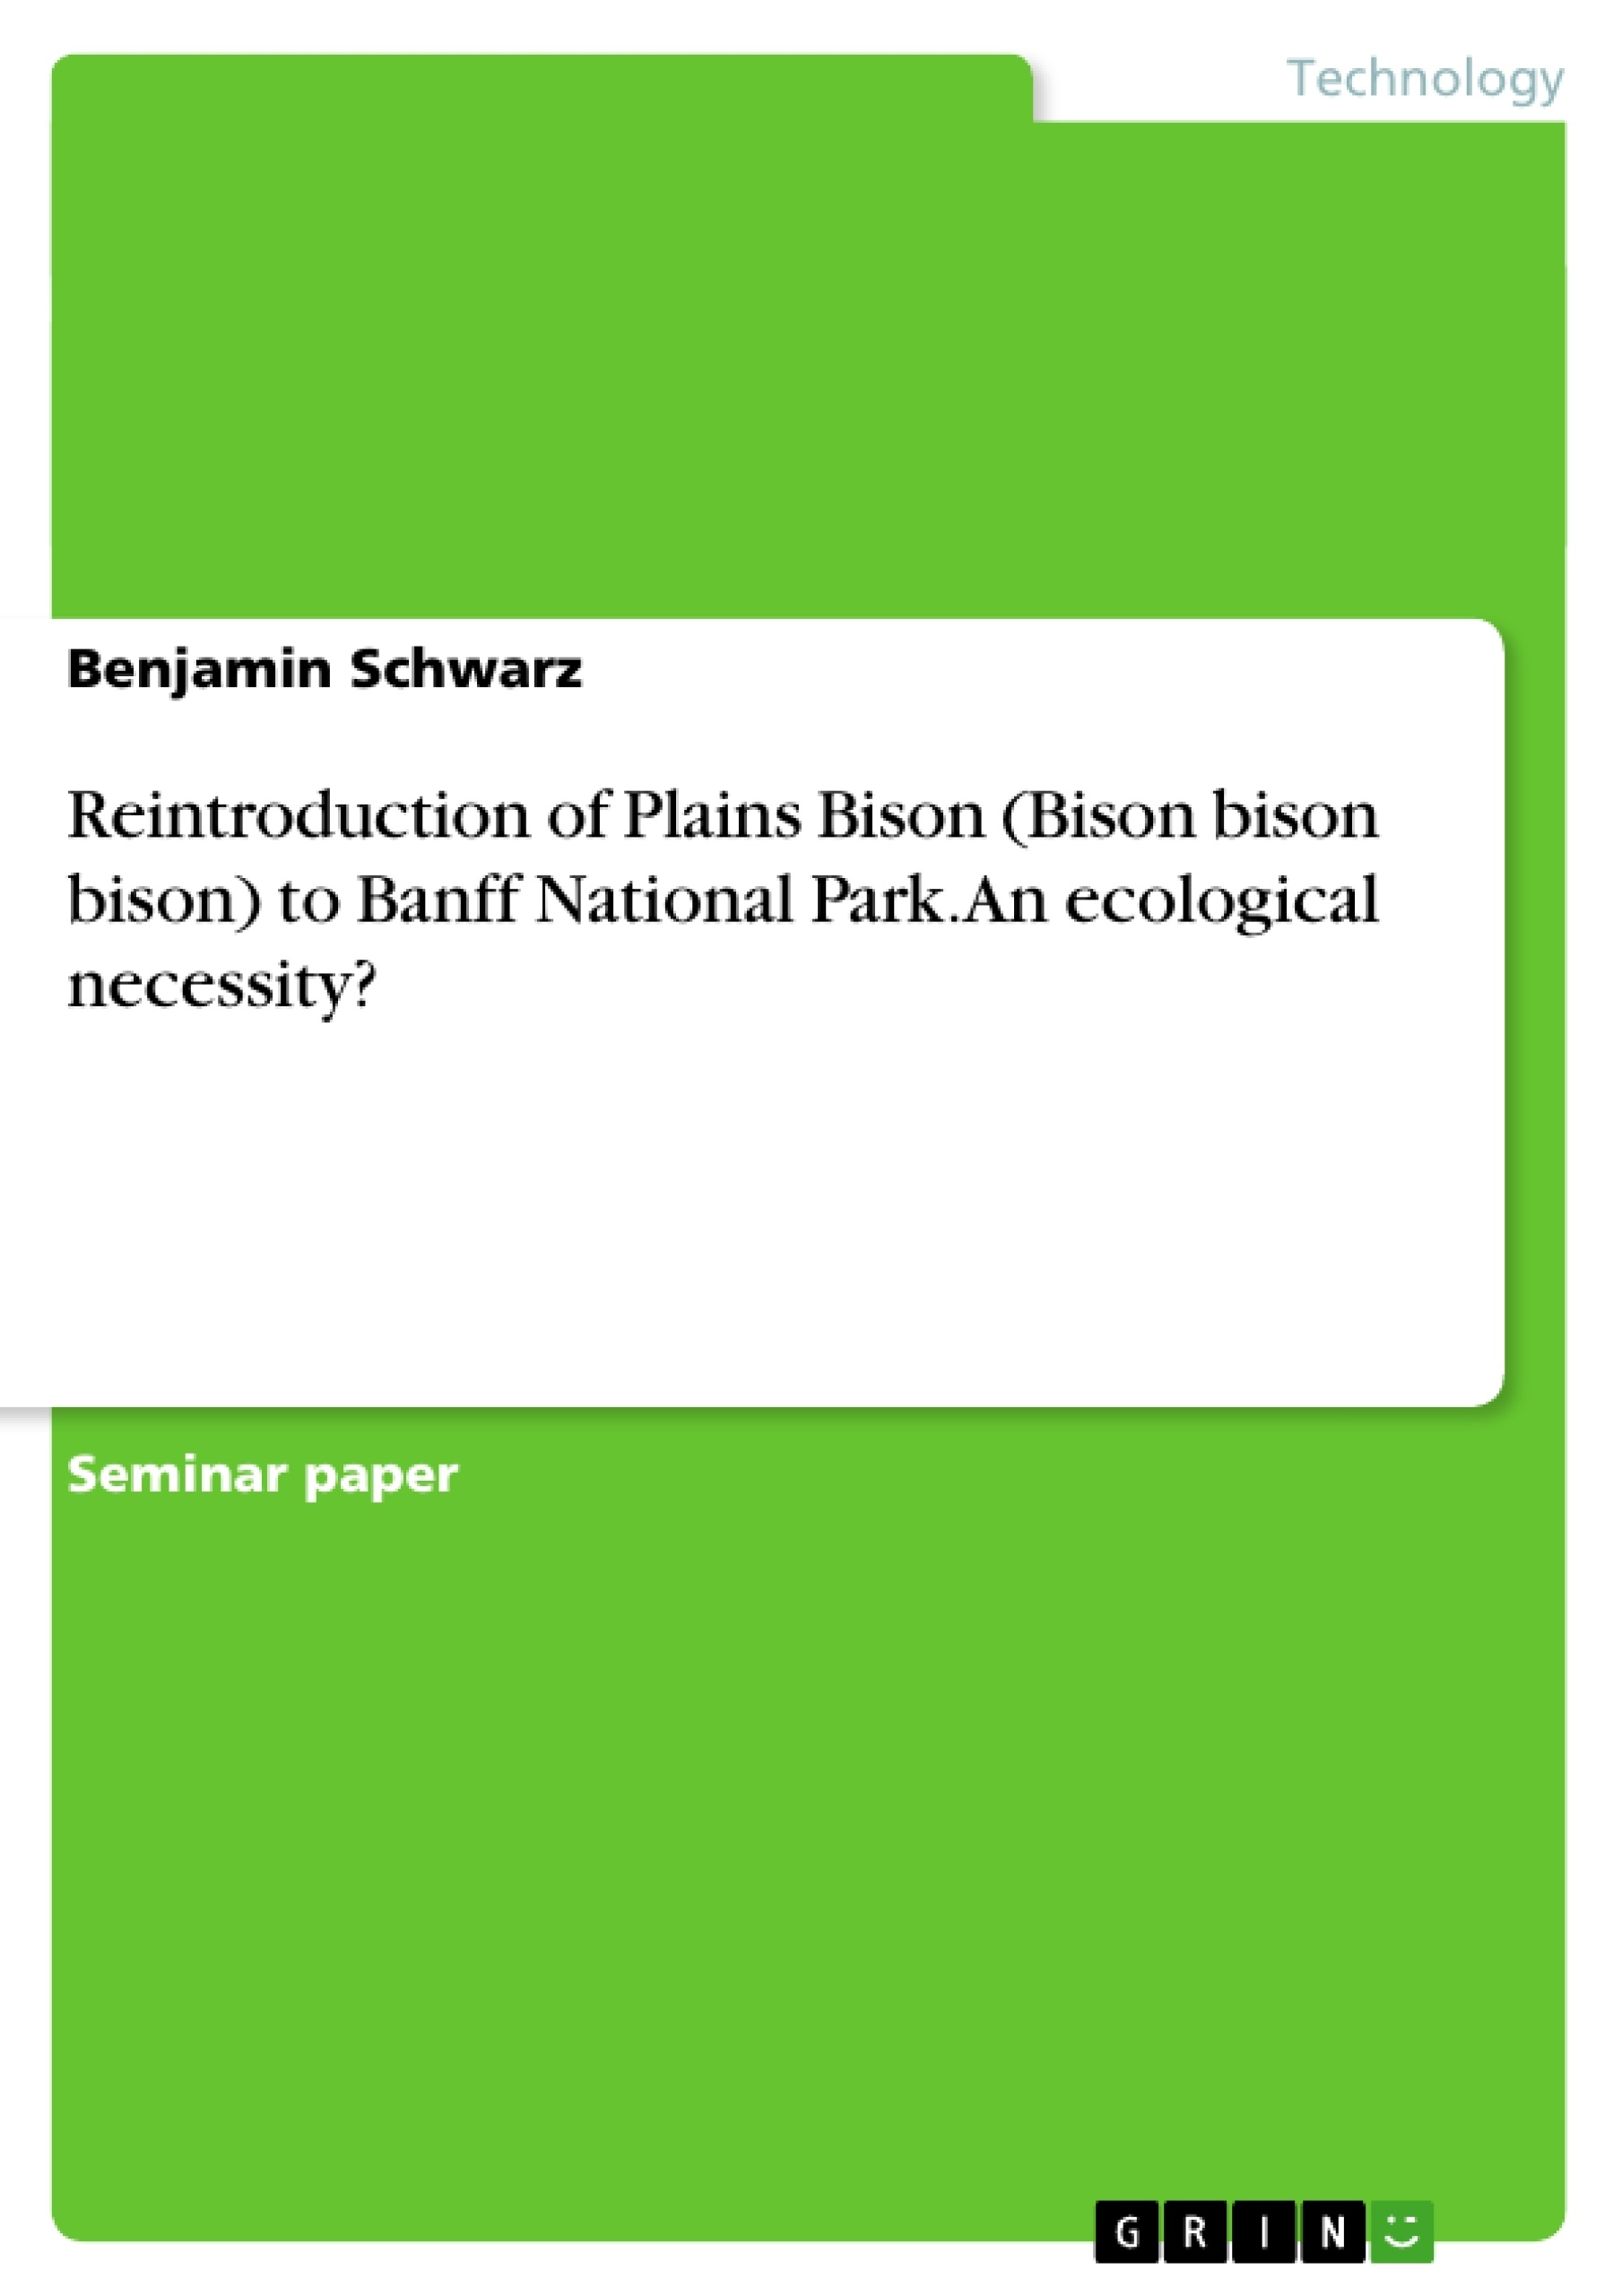 Title: Reintroduction of Plains Bison (Bison bison bison) to Banff National Park. An ecological necessity?